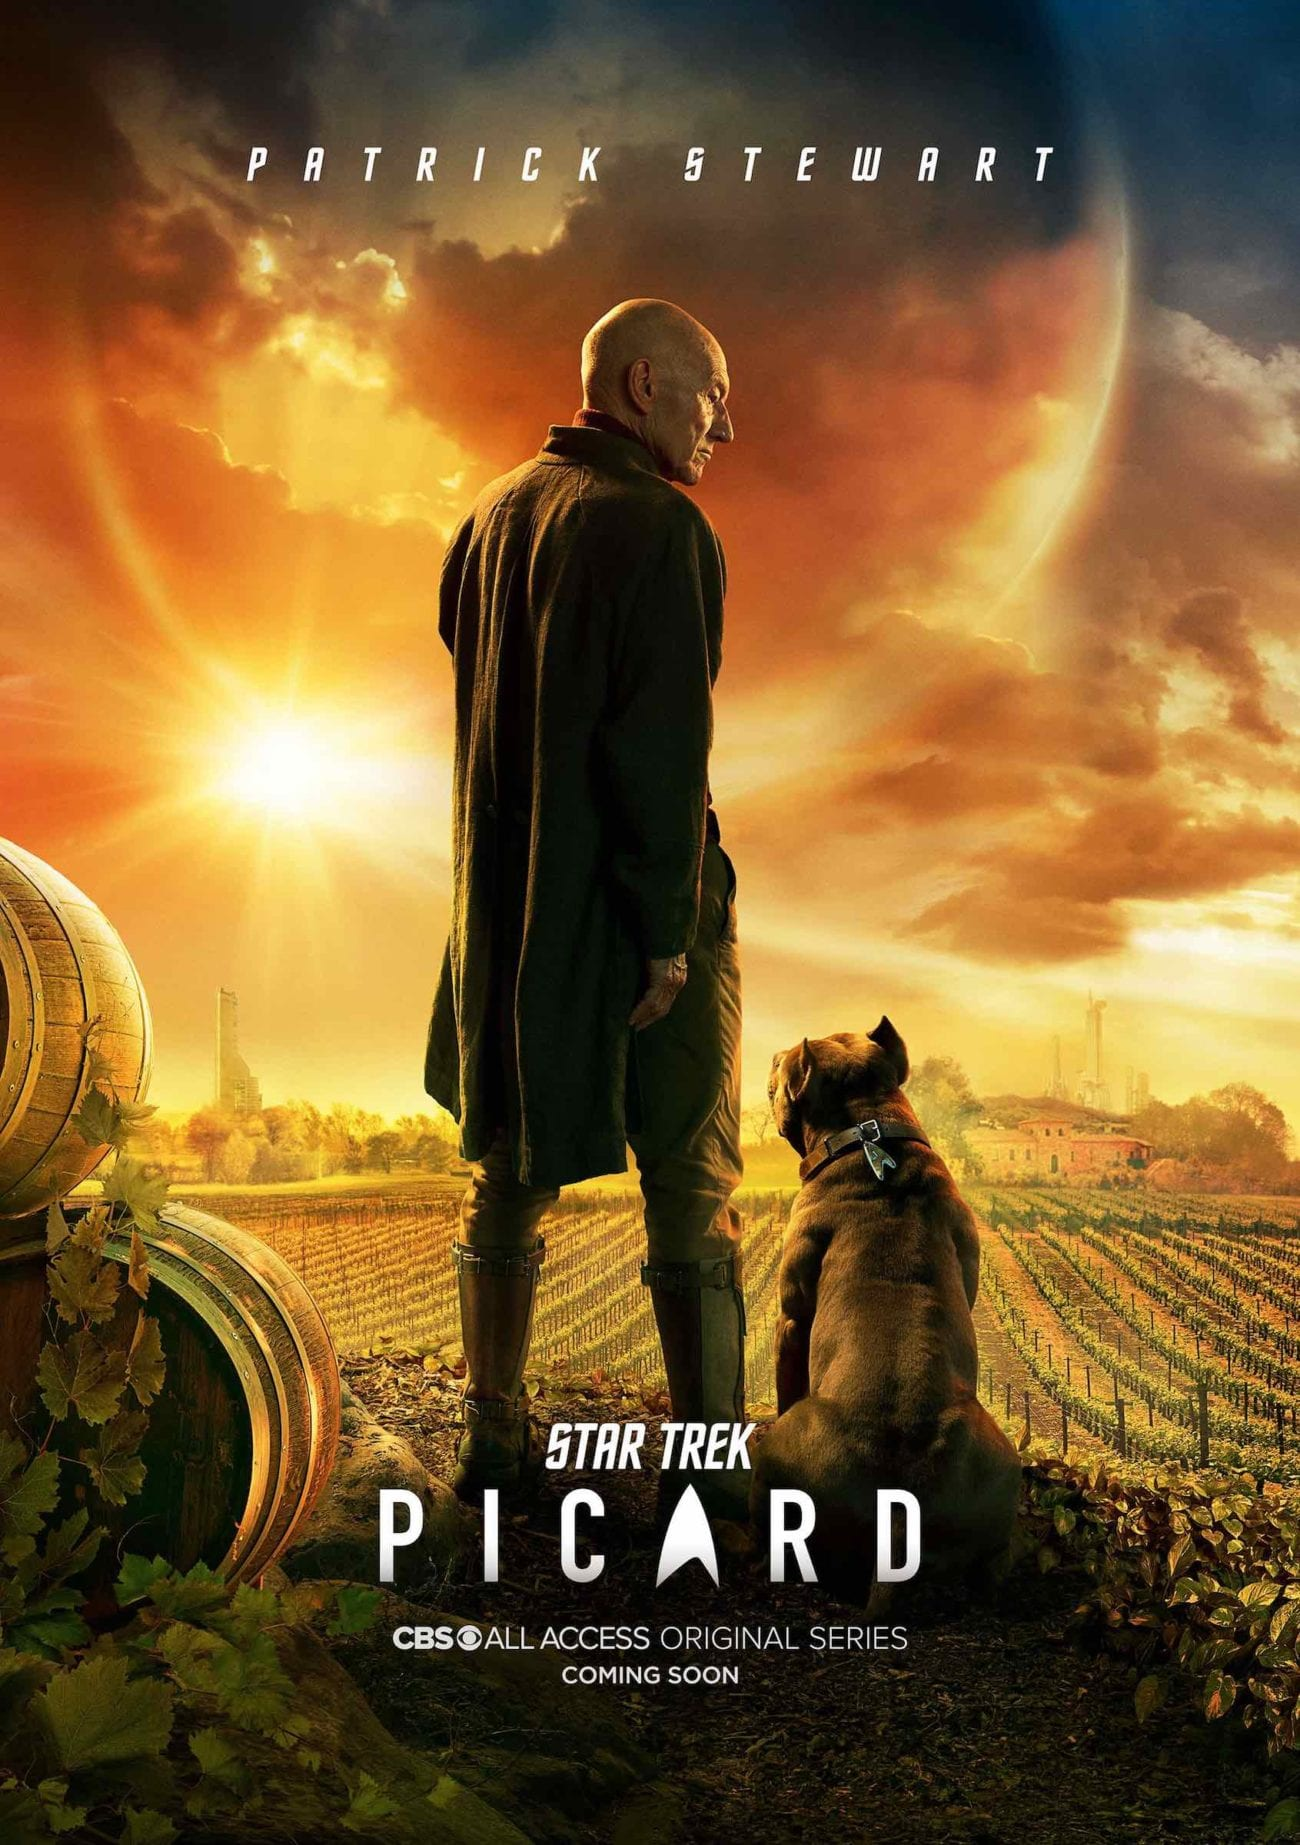 We came up with a few things 'Star Trek: Picard' could borrow from its predecessors to thrill us, 'Star Trek: The Next Generation'.